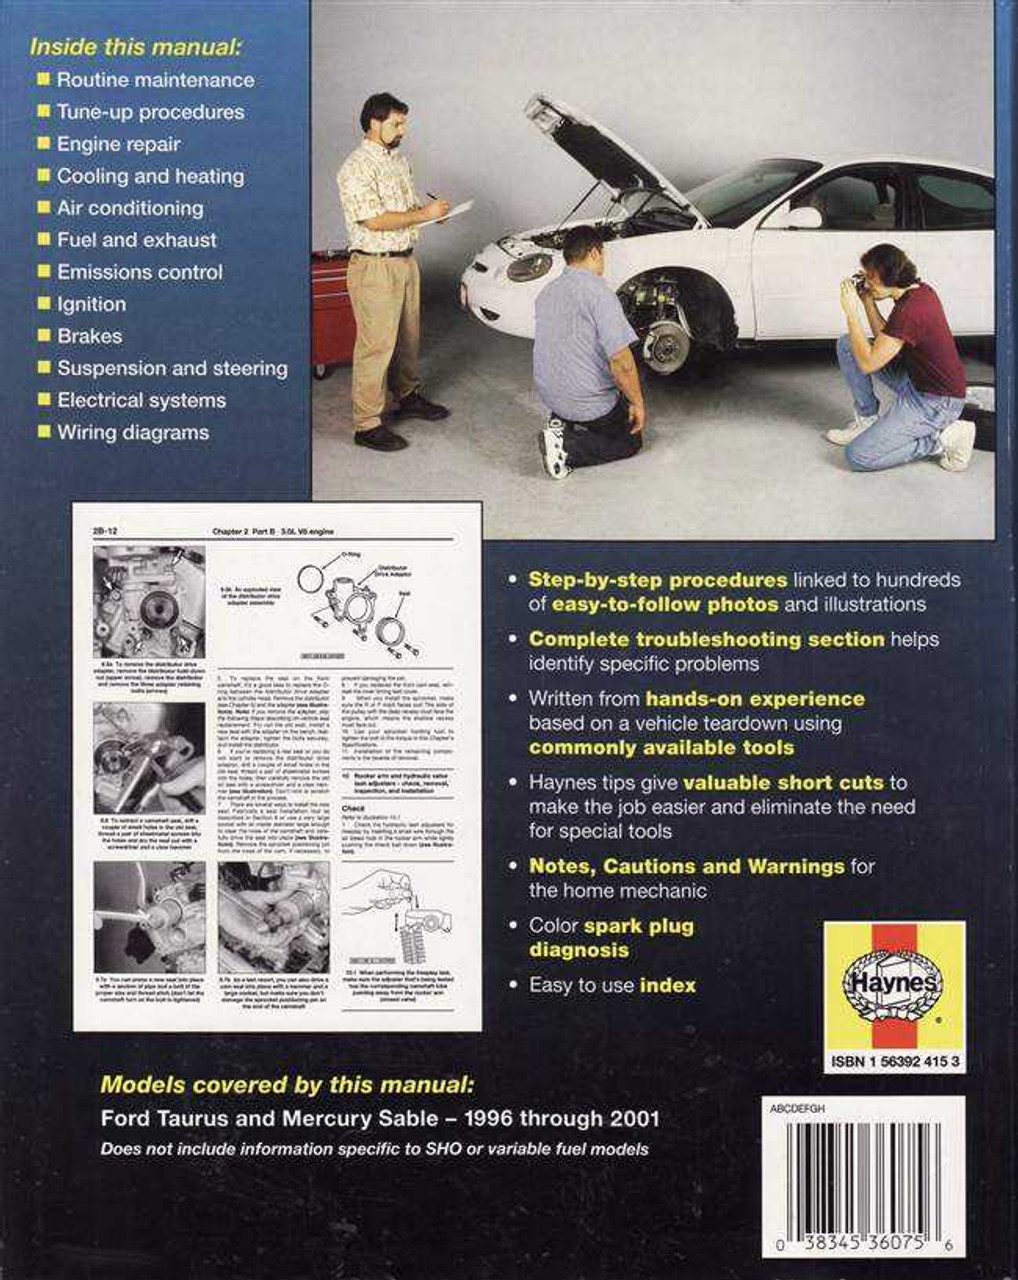 hight resolution of ford taurus and mercury sable 1996 2001 workshop manual 96 mercury sable exhaust diagram